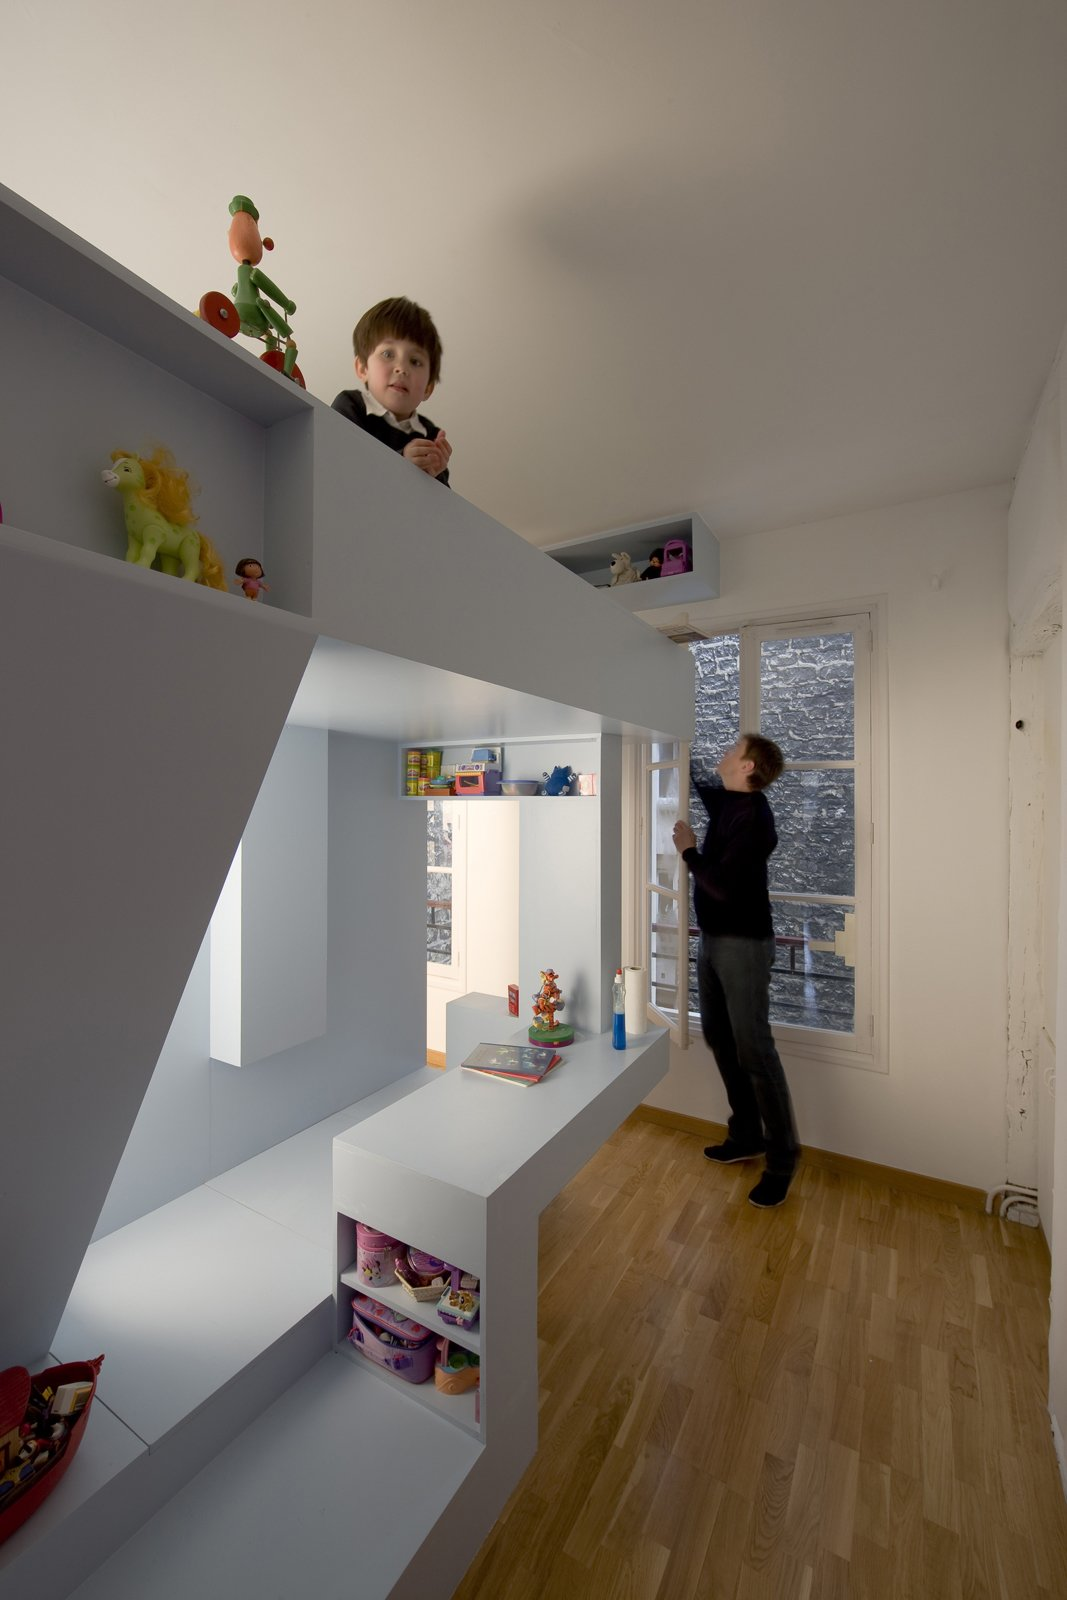 It's hard to be small and see the world from the eye level of adults' knees. In the children's bedroom, Eva's viewing perspective is reversed, and she observes her brother and parents from on high as she perches in her bed.  Photo 6 of 11 in Kids' Room Renovation